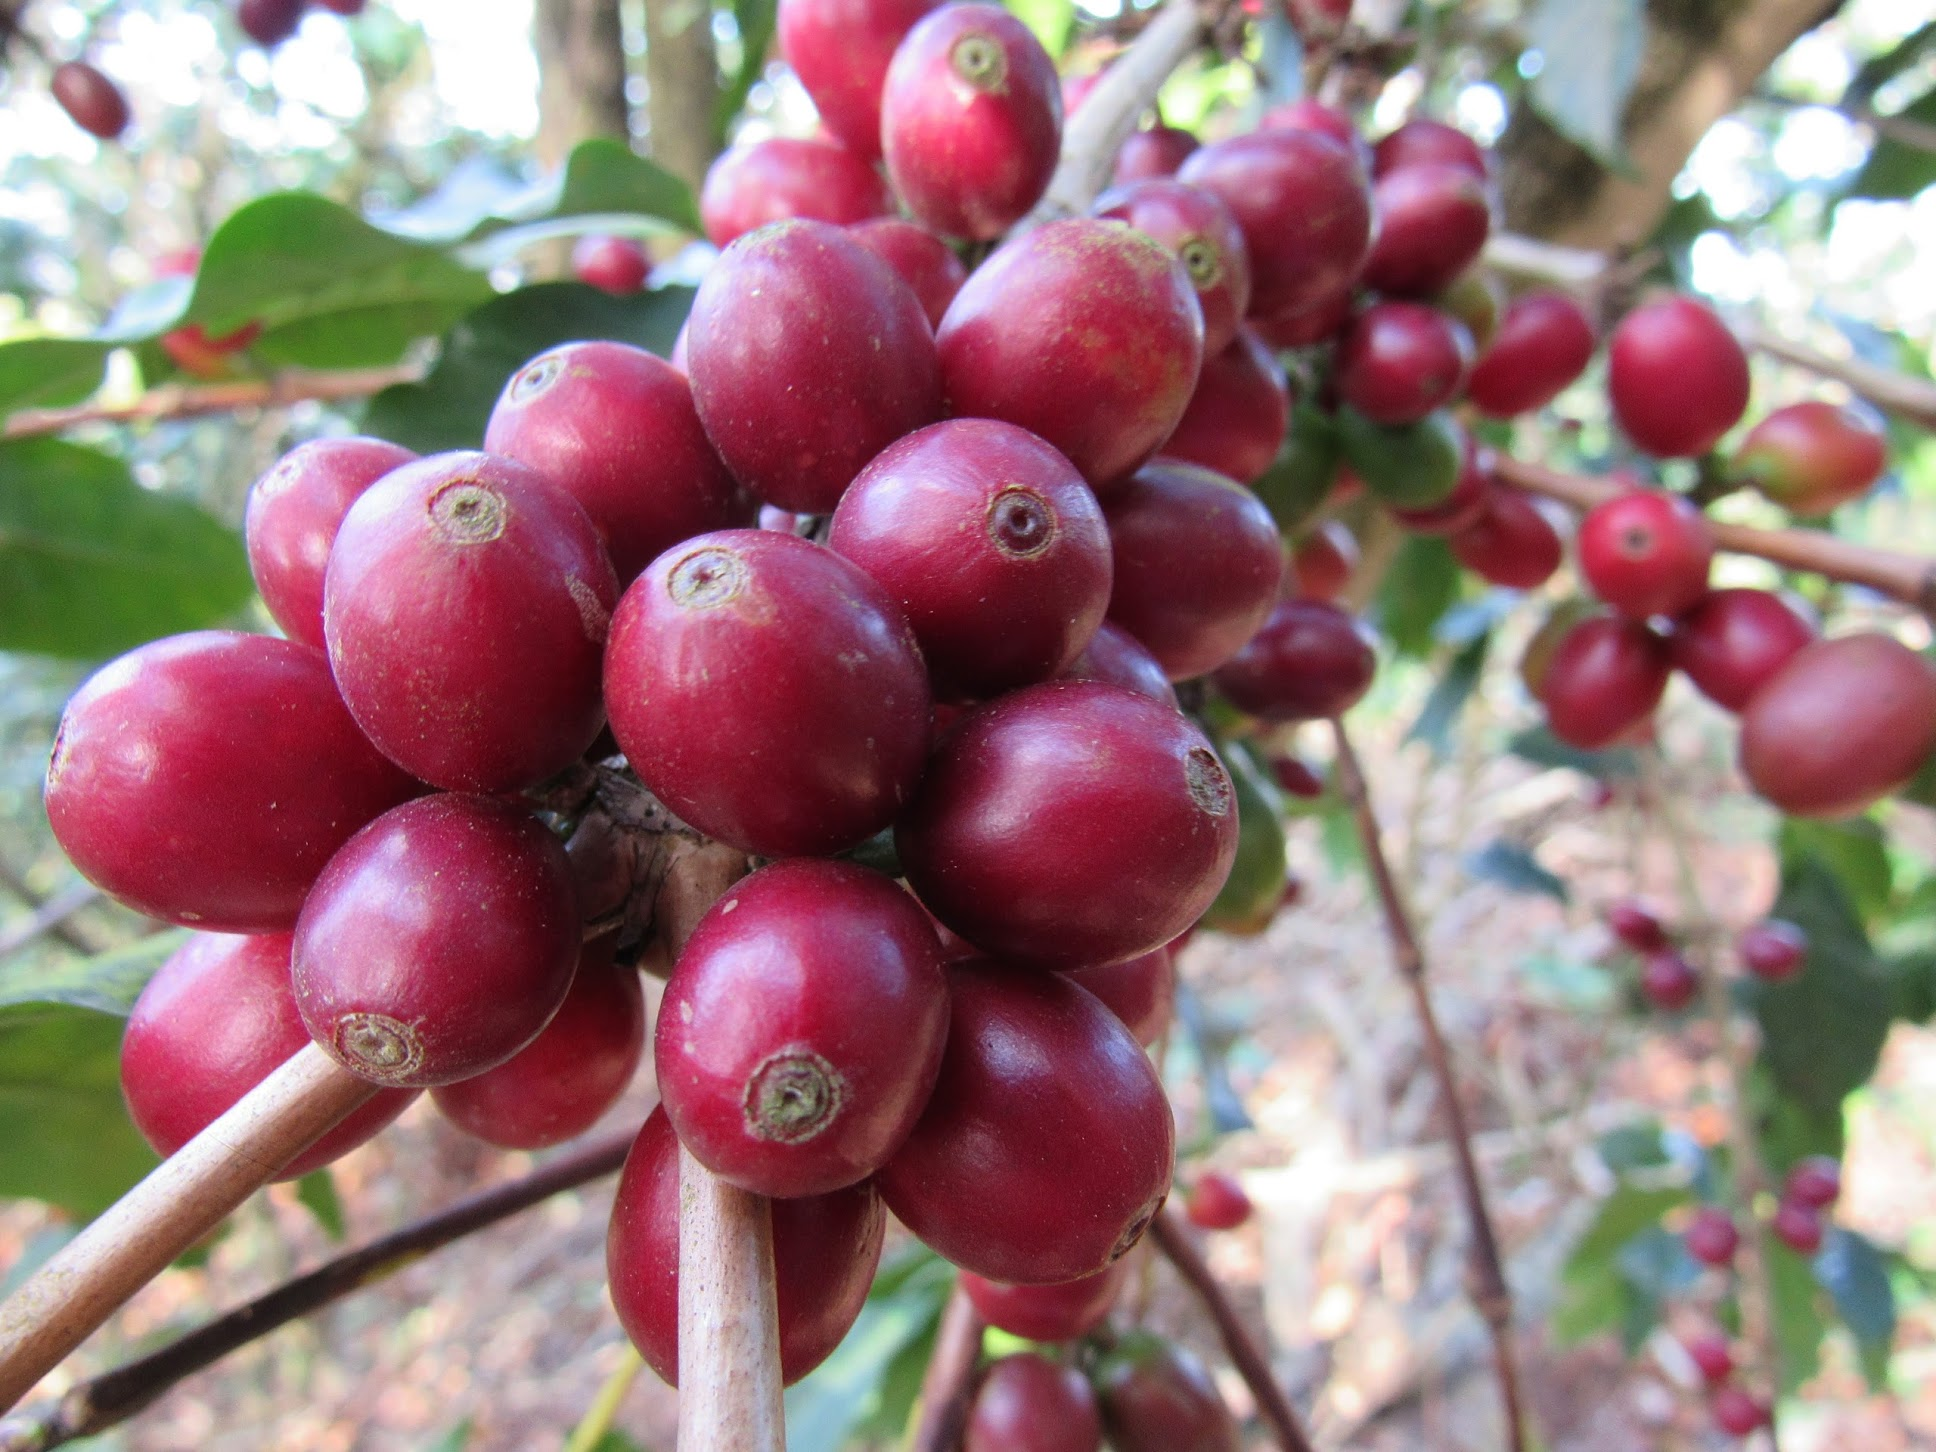 A tree full of ripe Typica variety cherry ripens deep red just before harvest.